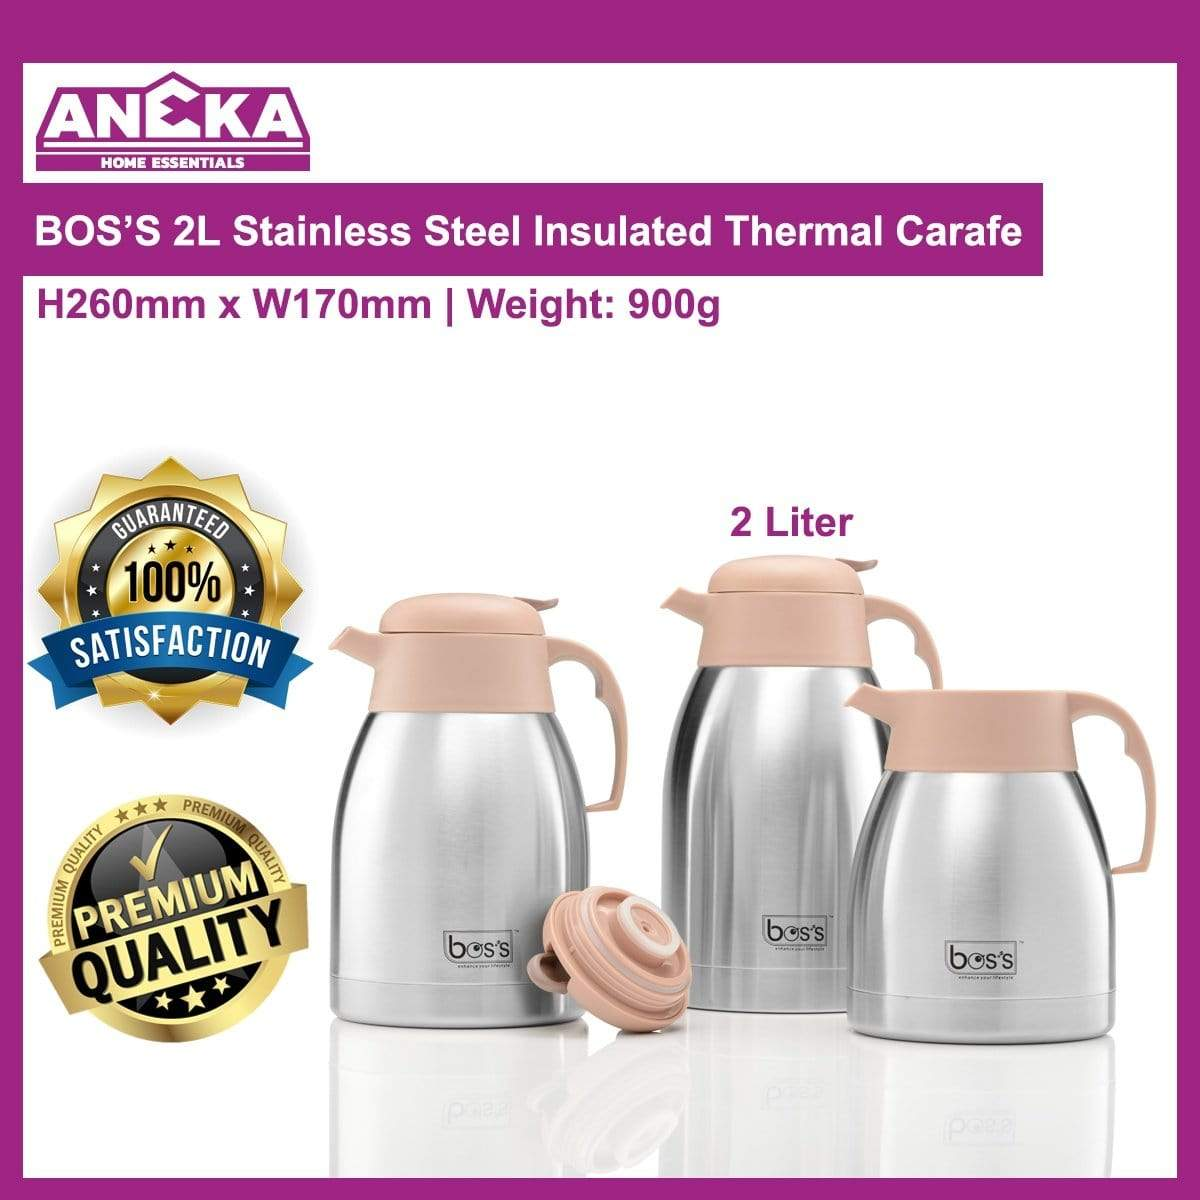 BCSK200 2.0lt BOS'S S/S Thermal Carafe